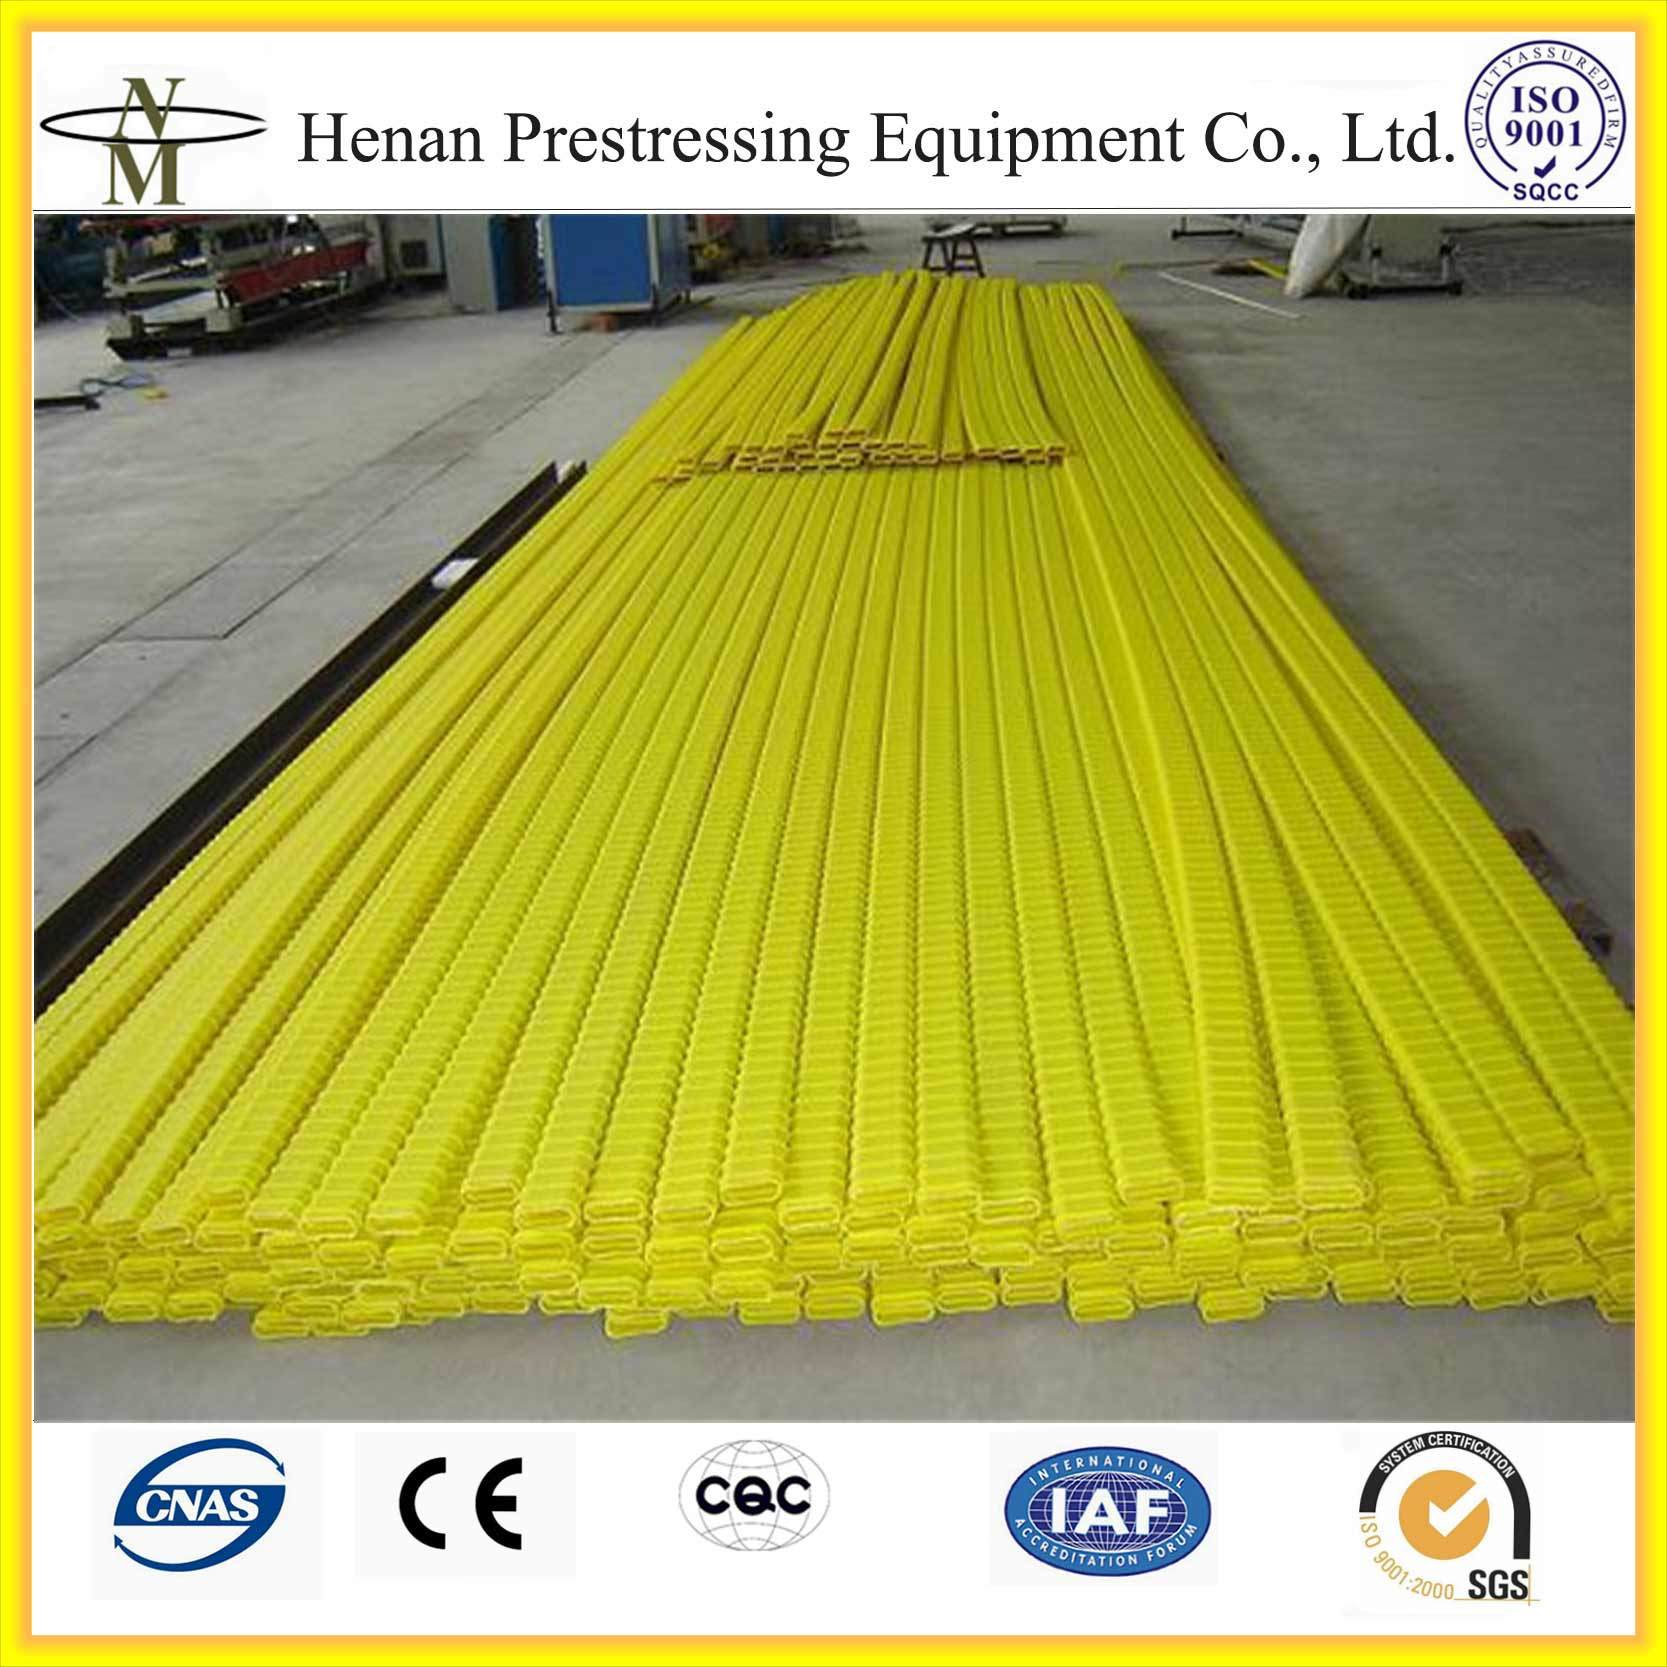 China Cnm Plastic HDPE Post Tension Flat Duct for 12.7mm Strands ...